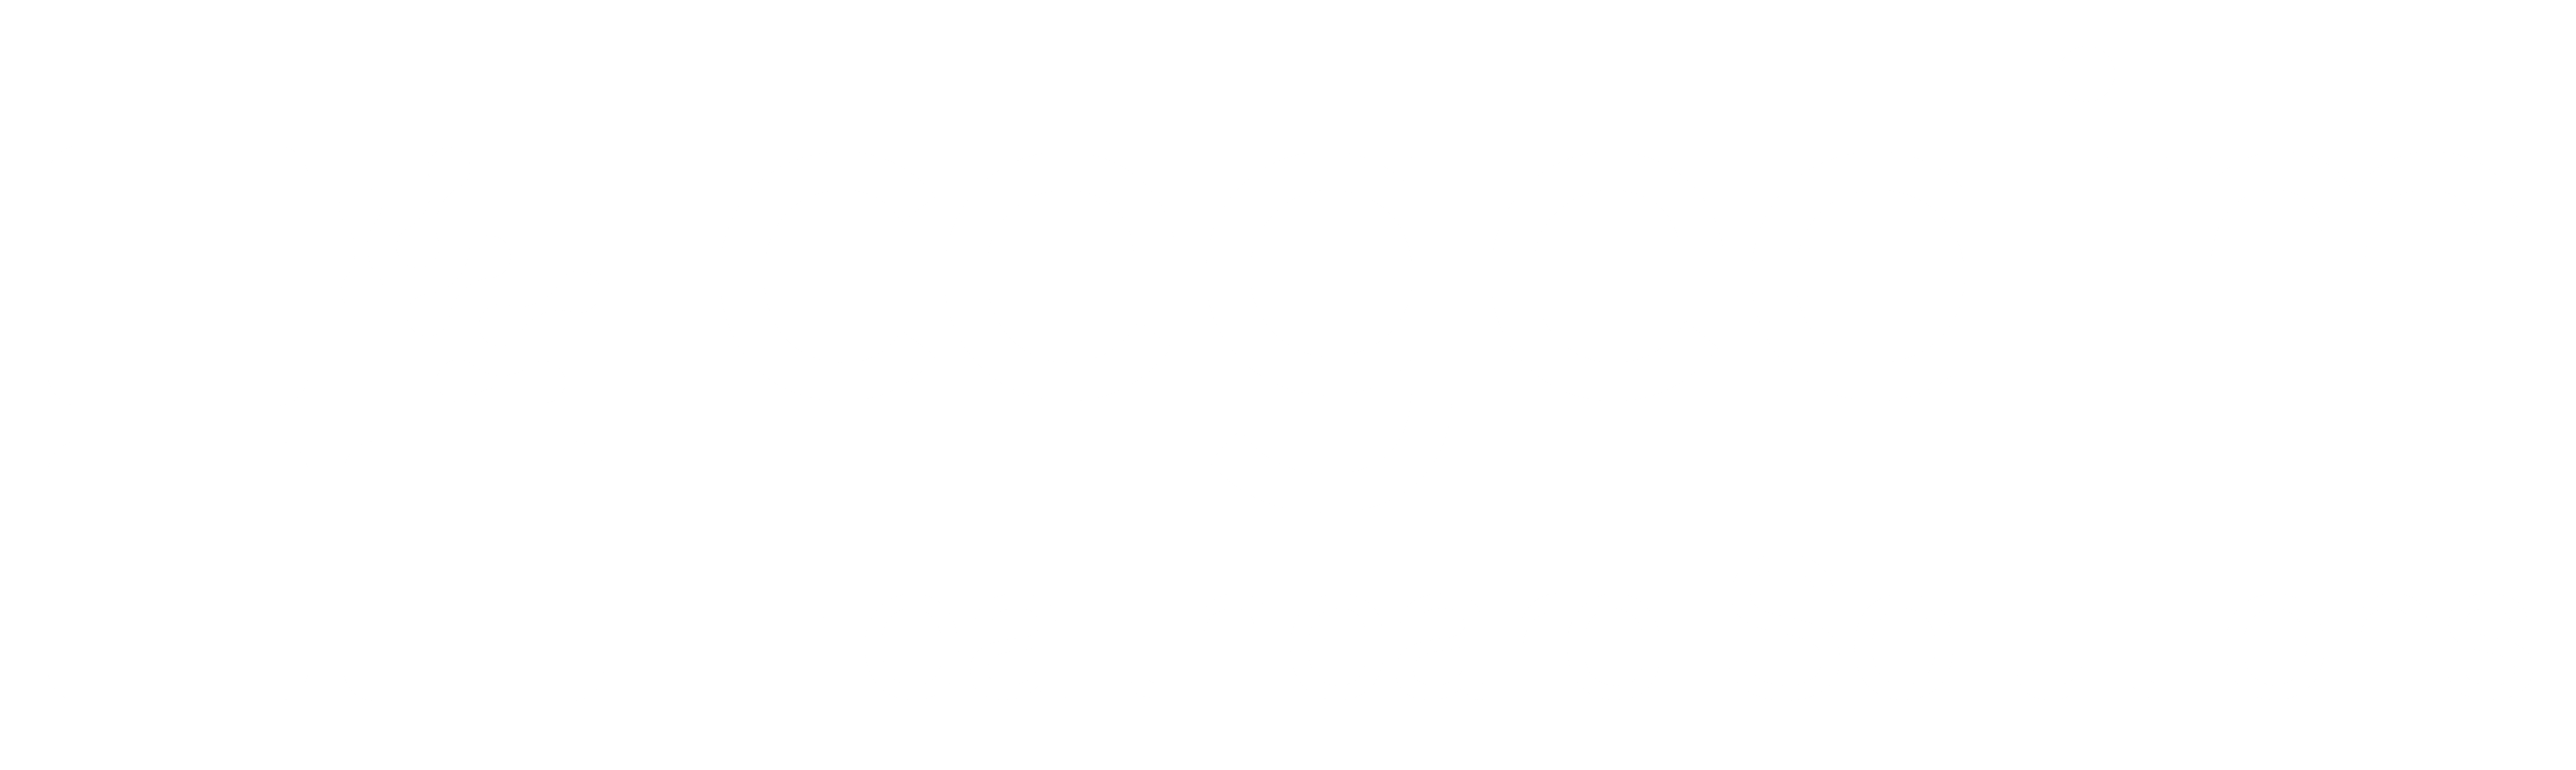 cegedim healthcare solution_logo white_-01-2